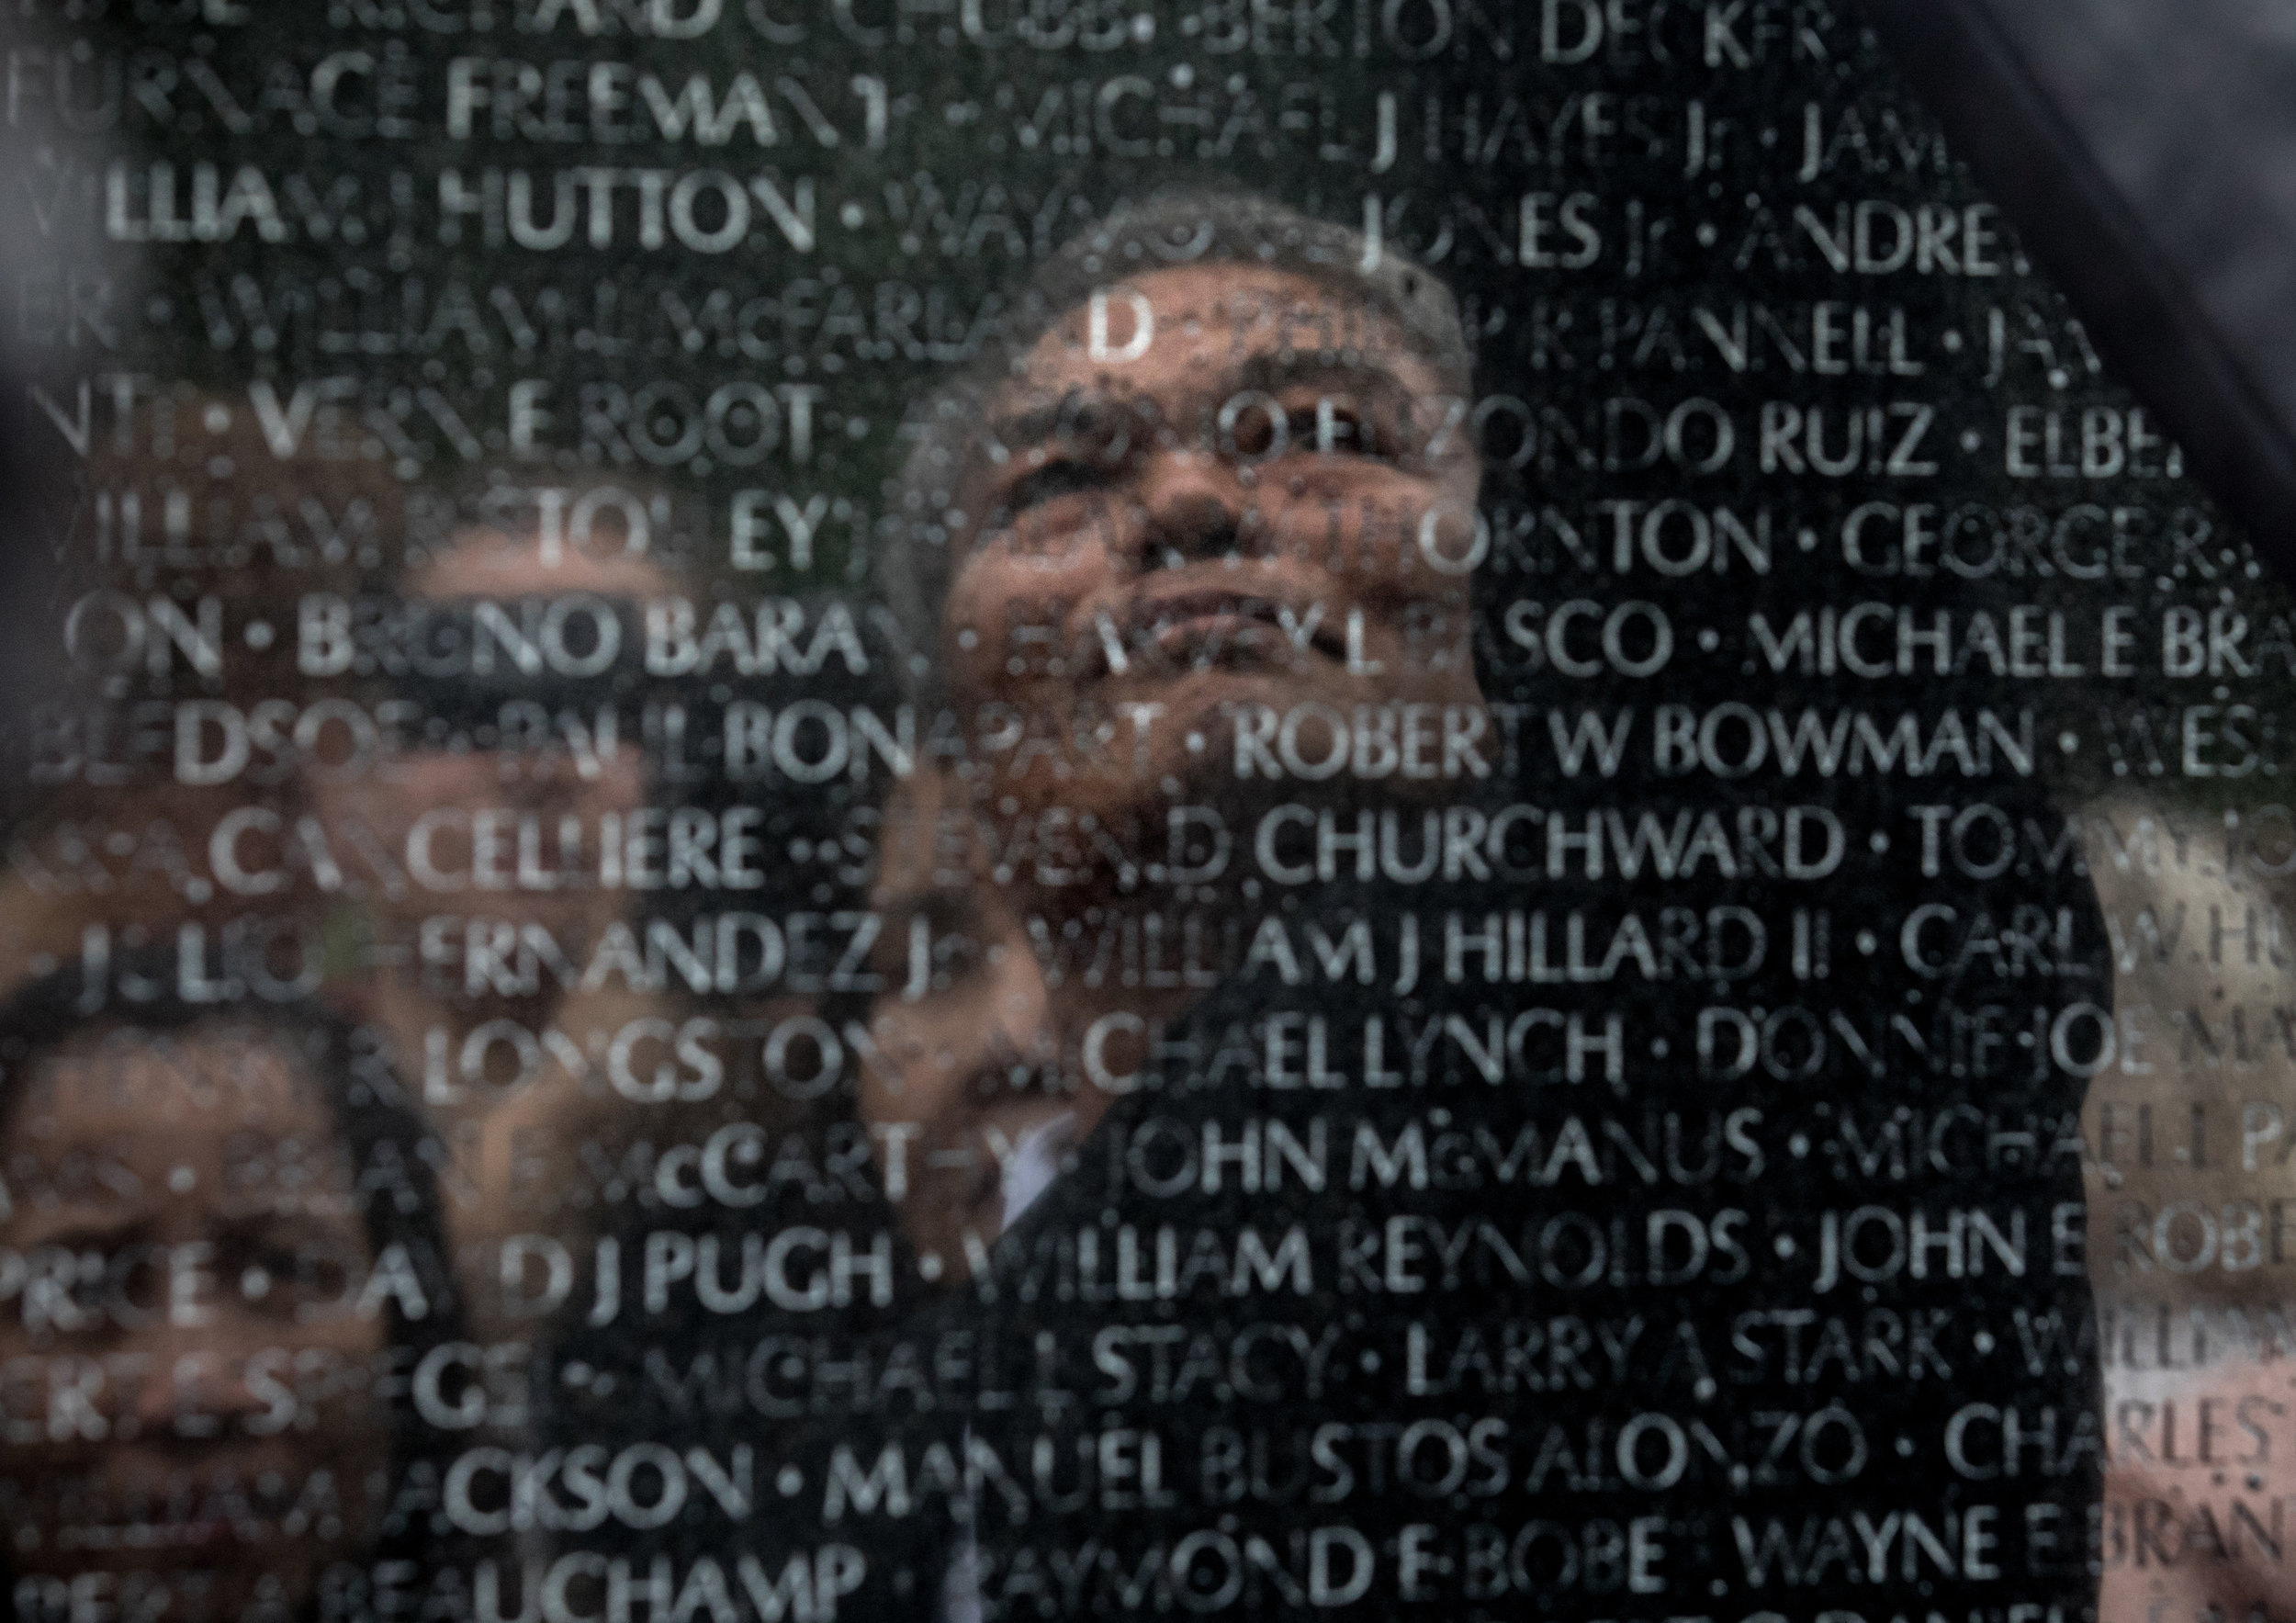 Vu Ngoc Xiem visits the Vietnam Memorial, with the 2Sides project, which brings together Vietnamese and Americans who lost their fathers on both sides of the war. (Photo by Evelyn Hockstein/For The Washington Post)